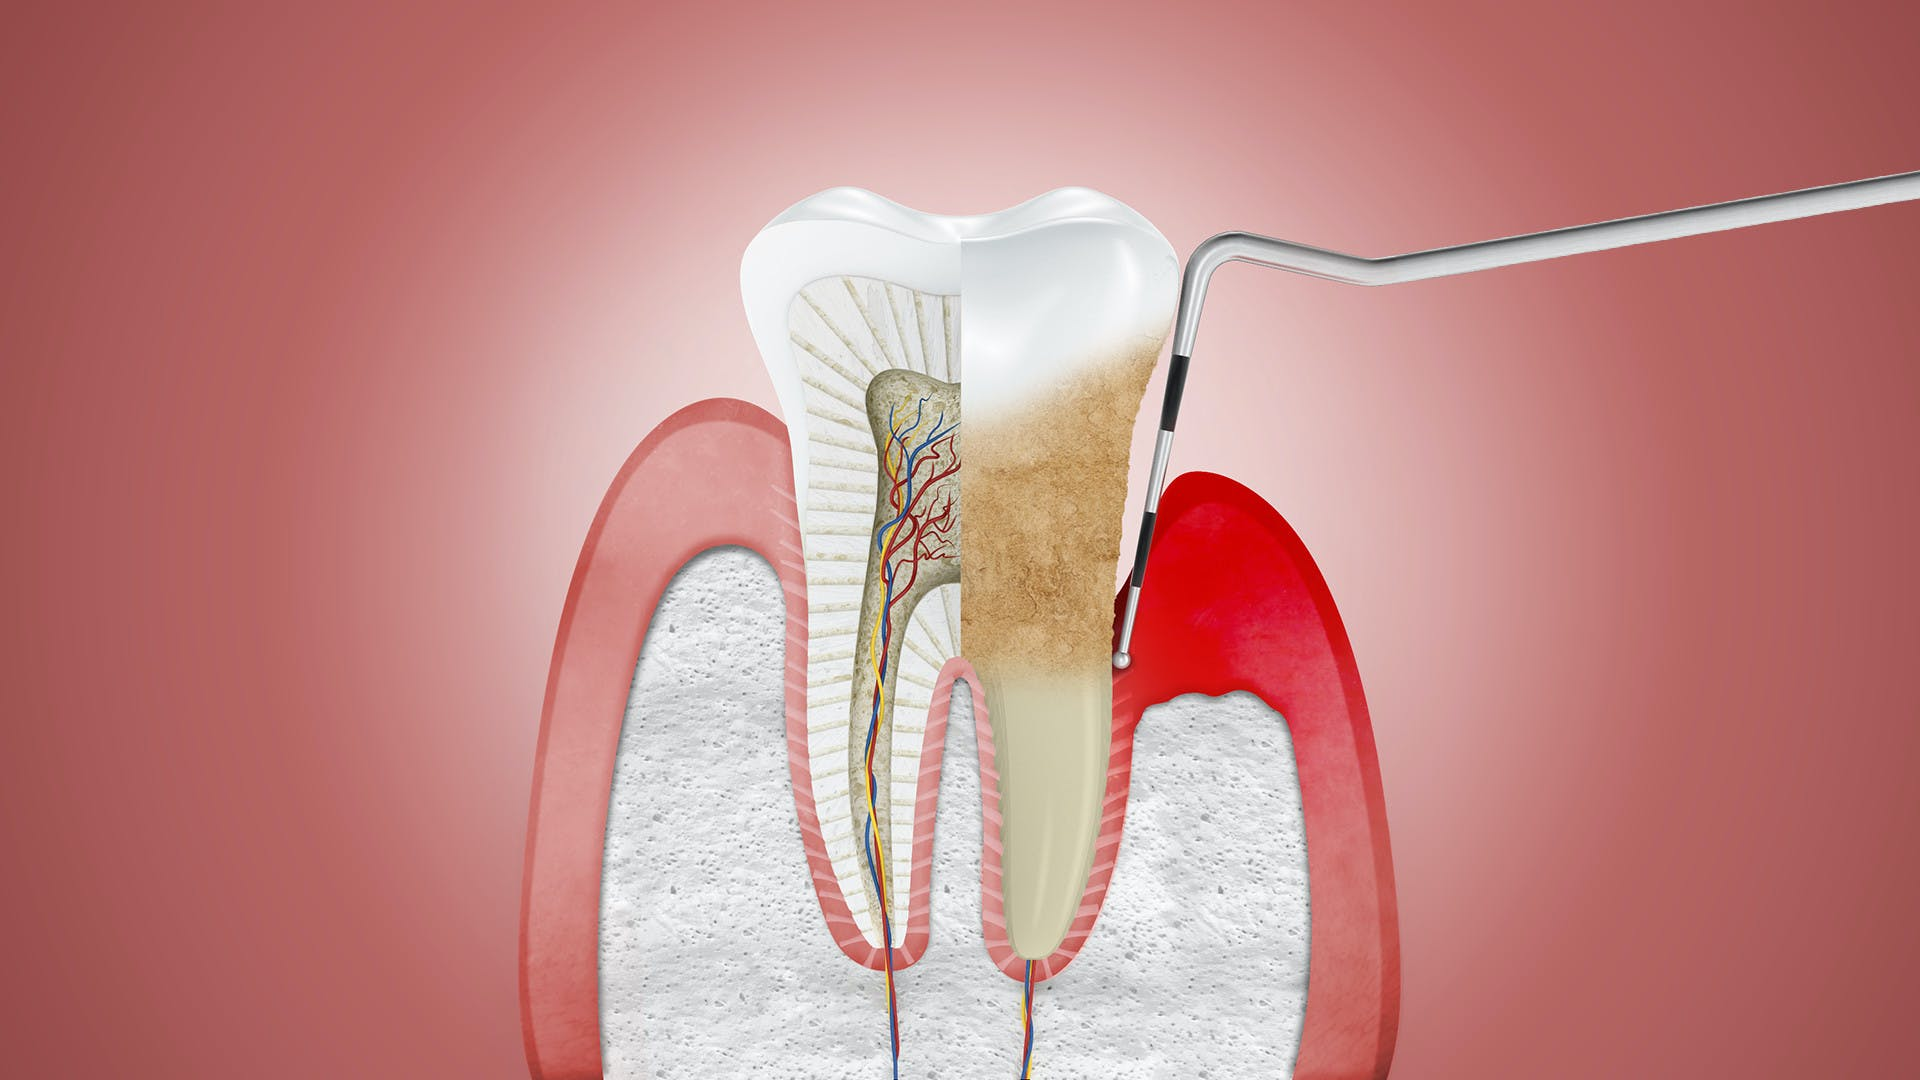 Illustration of gums affected by periodontitis, with dentist tool